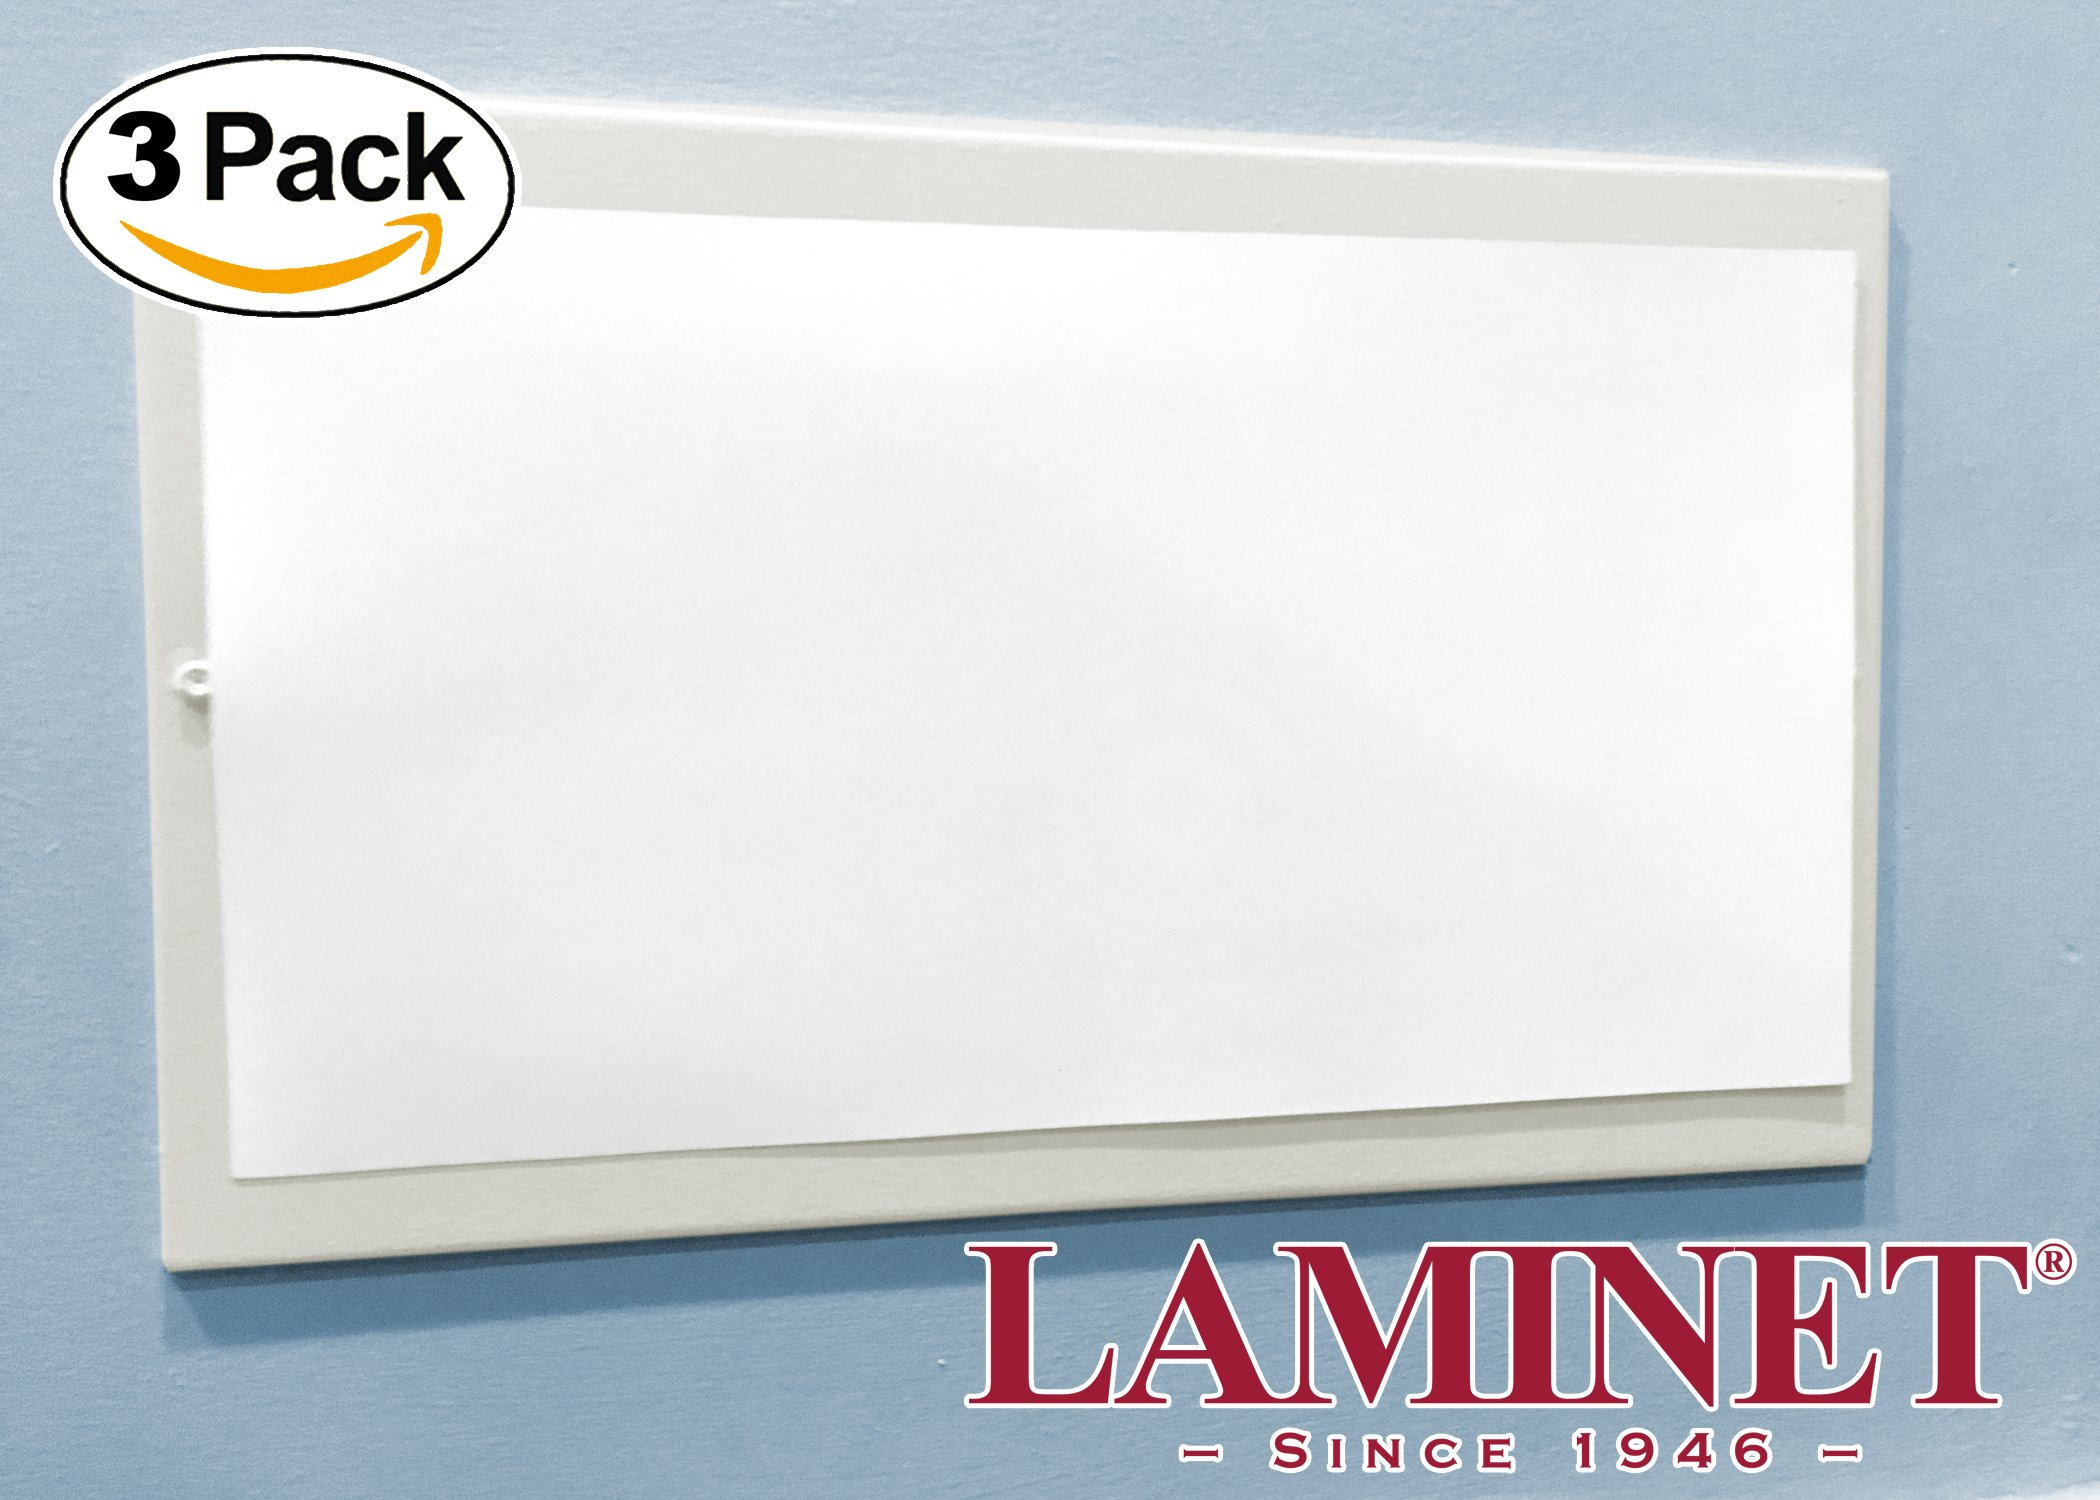 LAMINET Thick White Magnetic Floor Vent Covers - Made in USA - Industrial Strength Magnet for Floor Air Registers - for RV, Home HVAC, AC & Furnace Vents - NOT for Ceiling Vents - 5.5'' x 12'' - 3-Pack by LAMINET